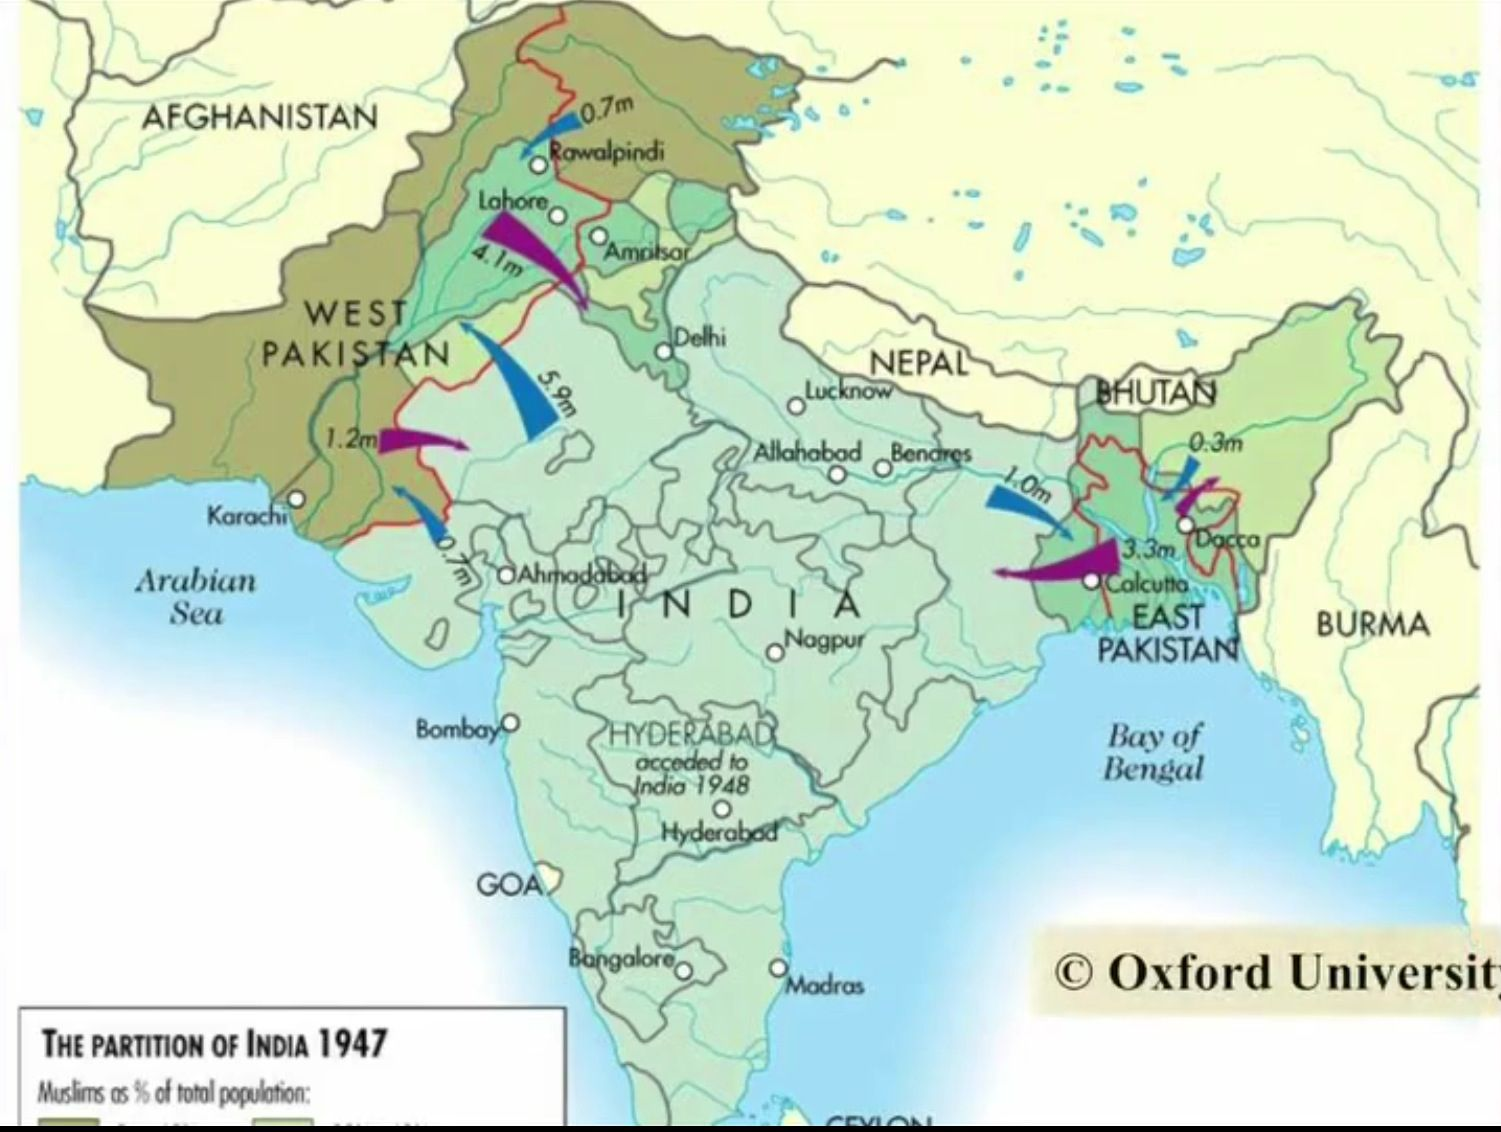 Partition of india in 1947 | Modern history from 1760 ...